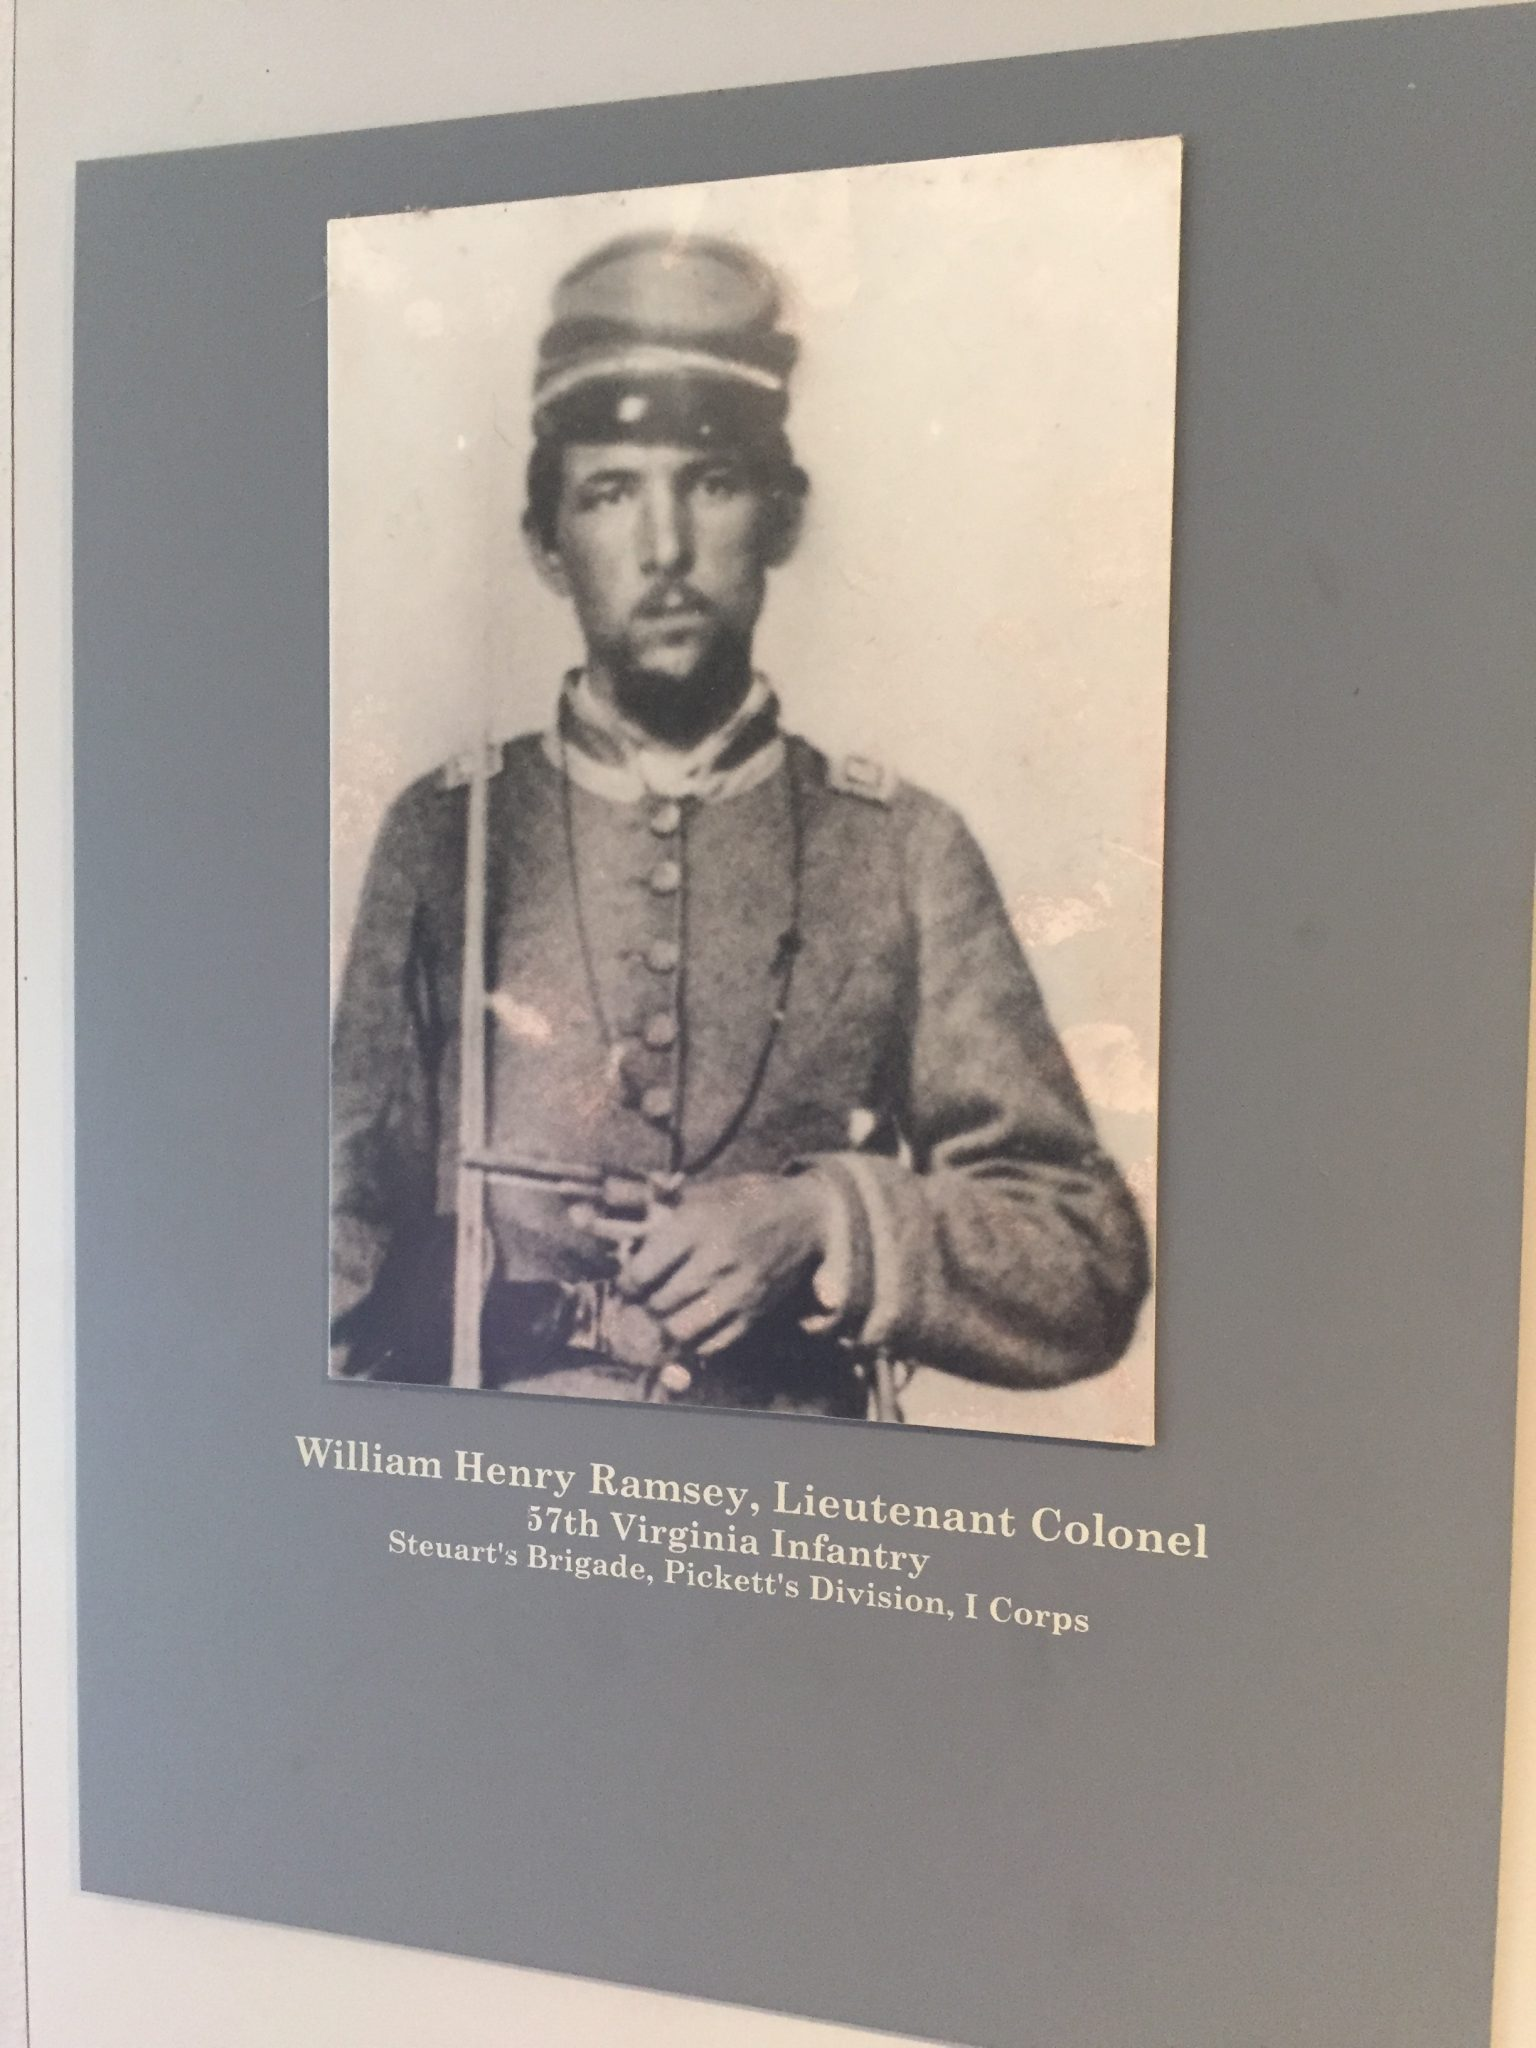 William Henry Ramsey, Lieutenant Colonel, 57th Virginia Infantry, Steuart's Brigade, Pickett's Division, I Corps